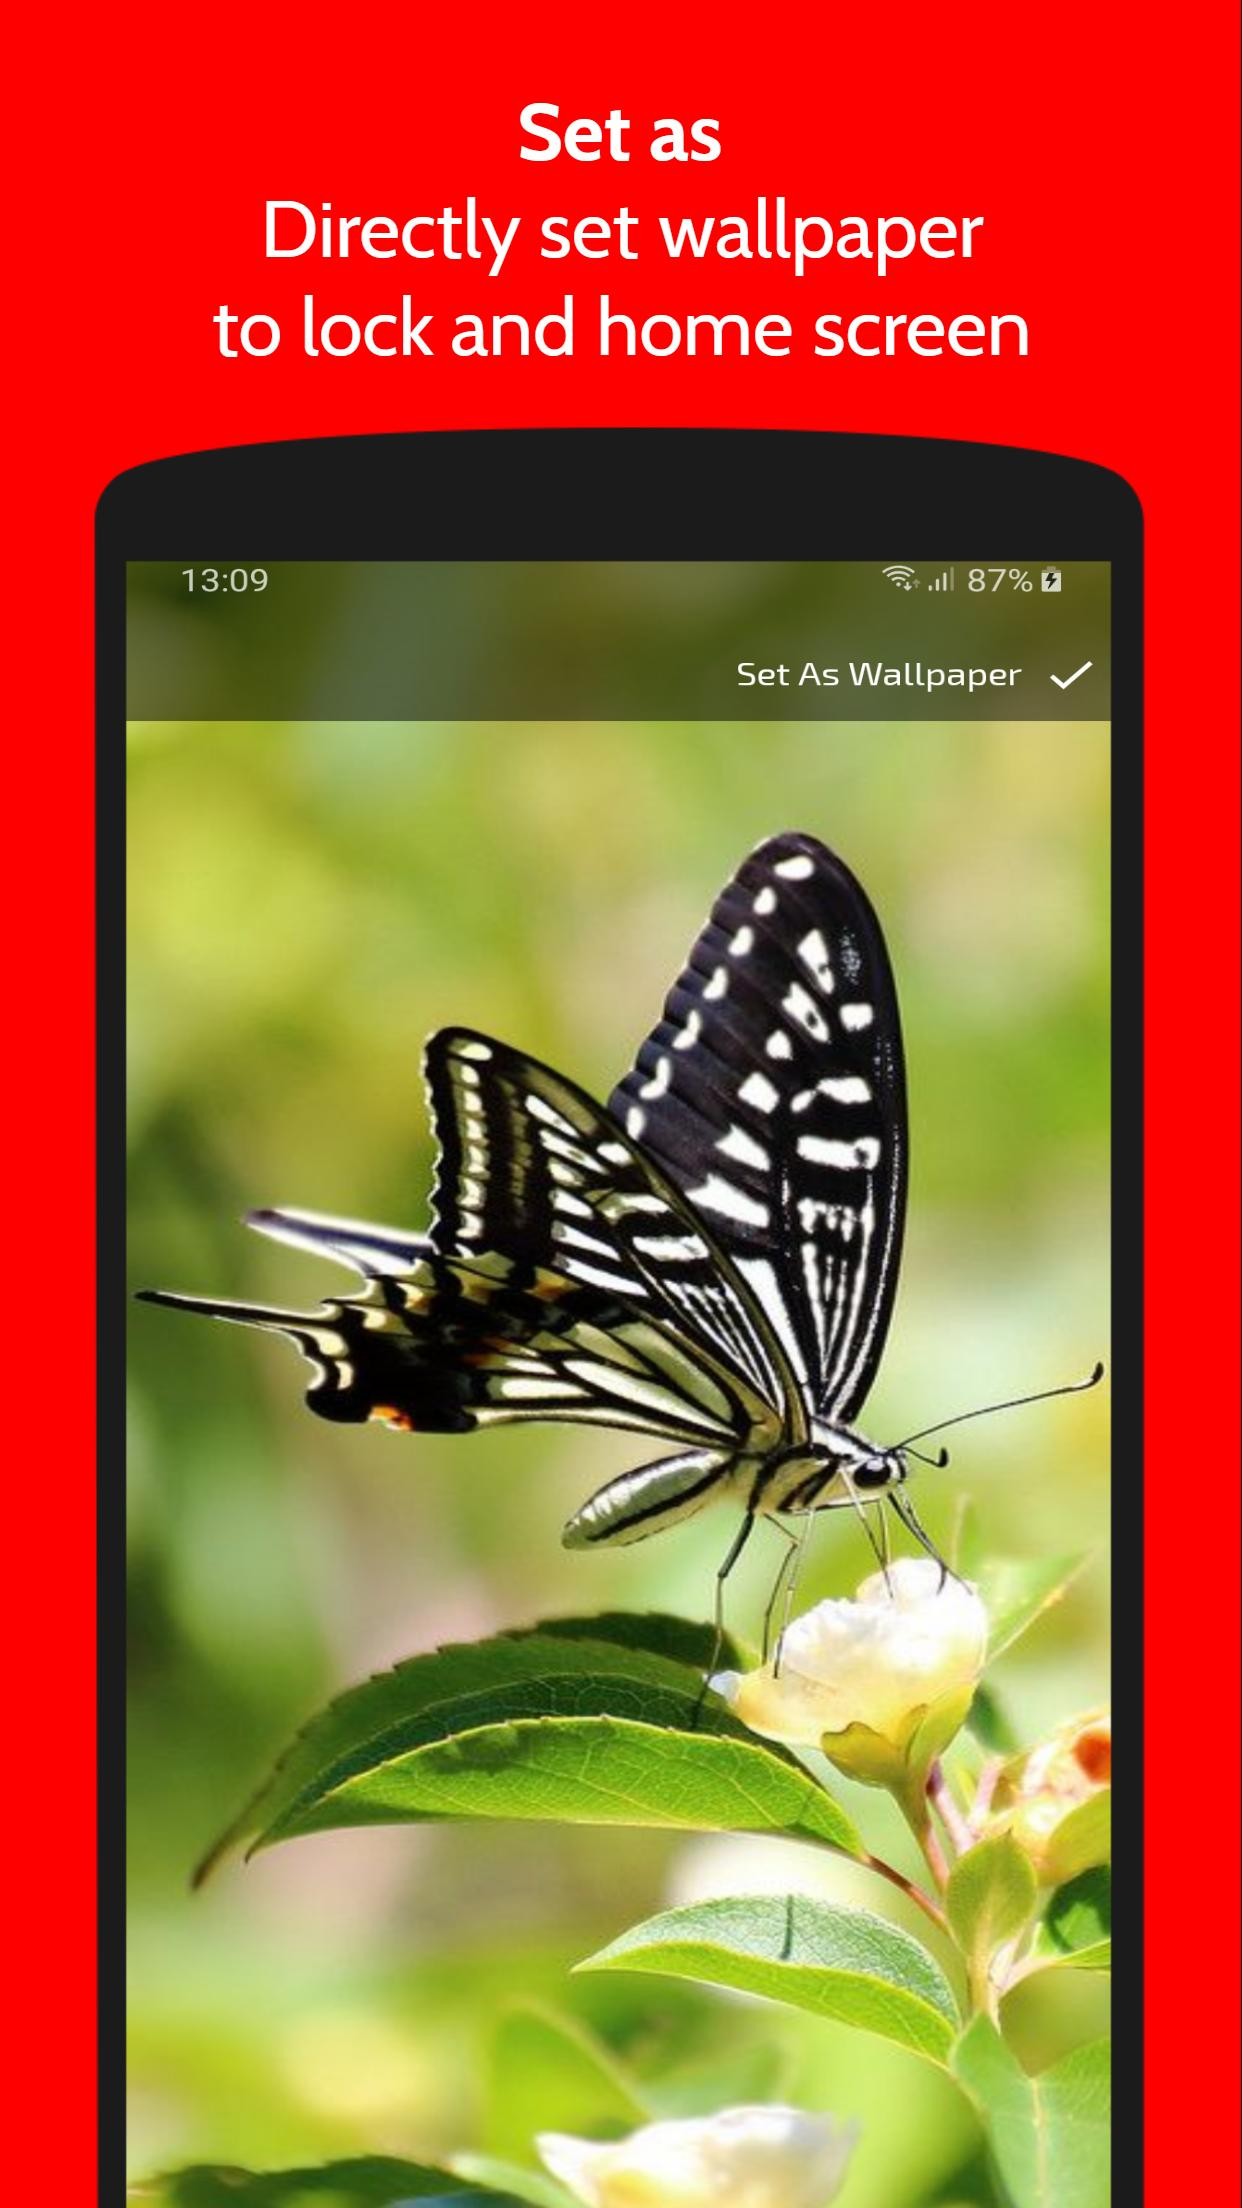 Butterfly Wallpaper Free Hd 4k Backgrounds For Android Apk Download